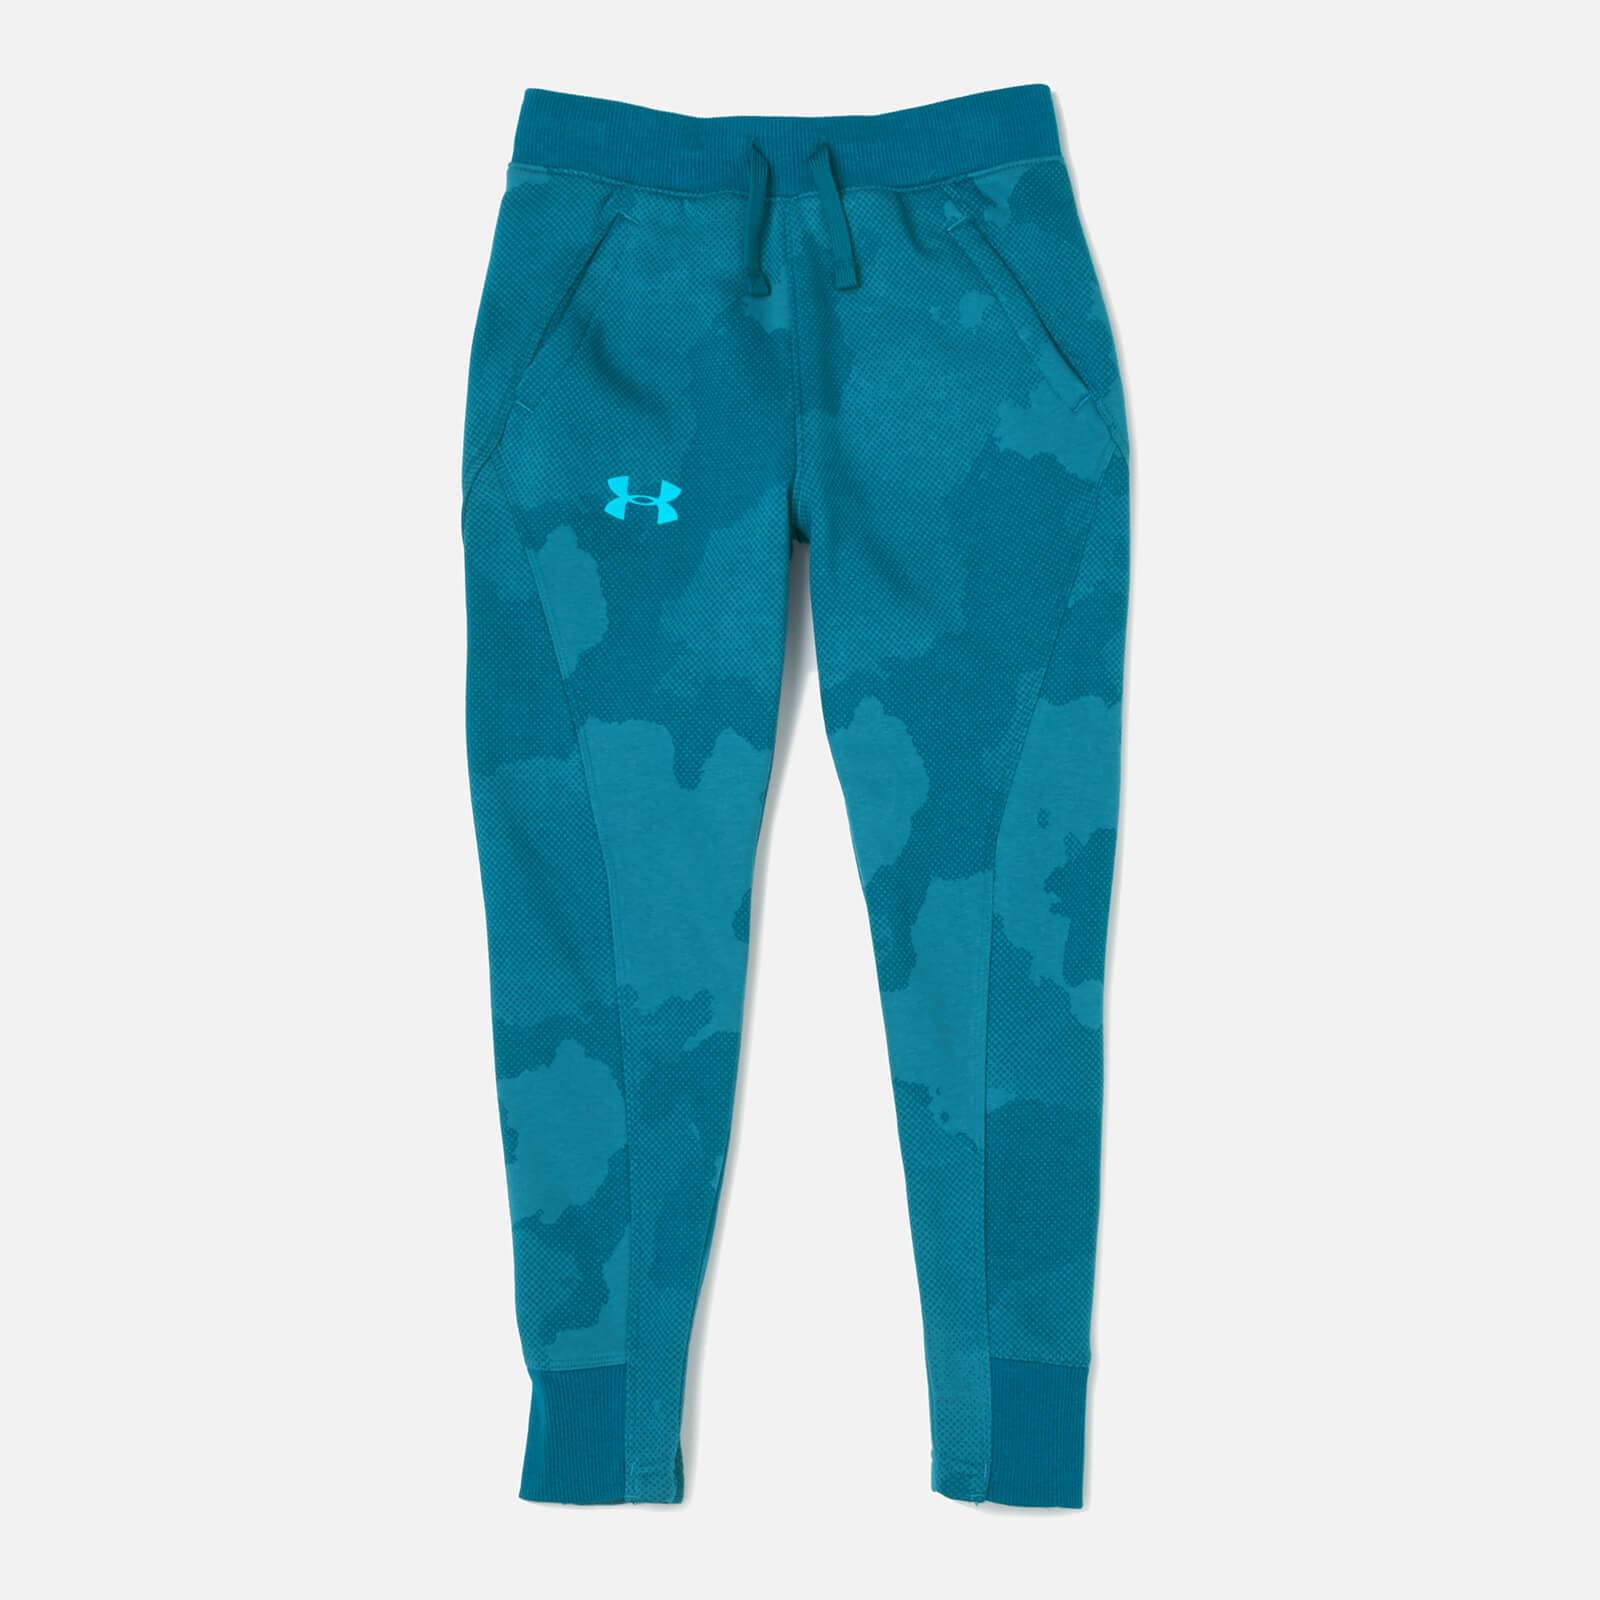 Under Armour Boys' Rival Printed Joggers - Techno Teal - M - Blue